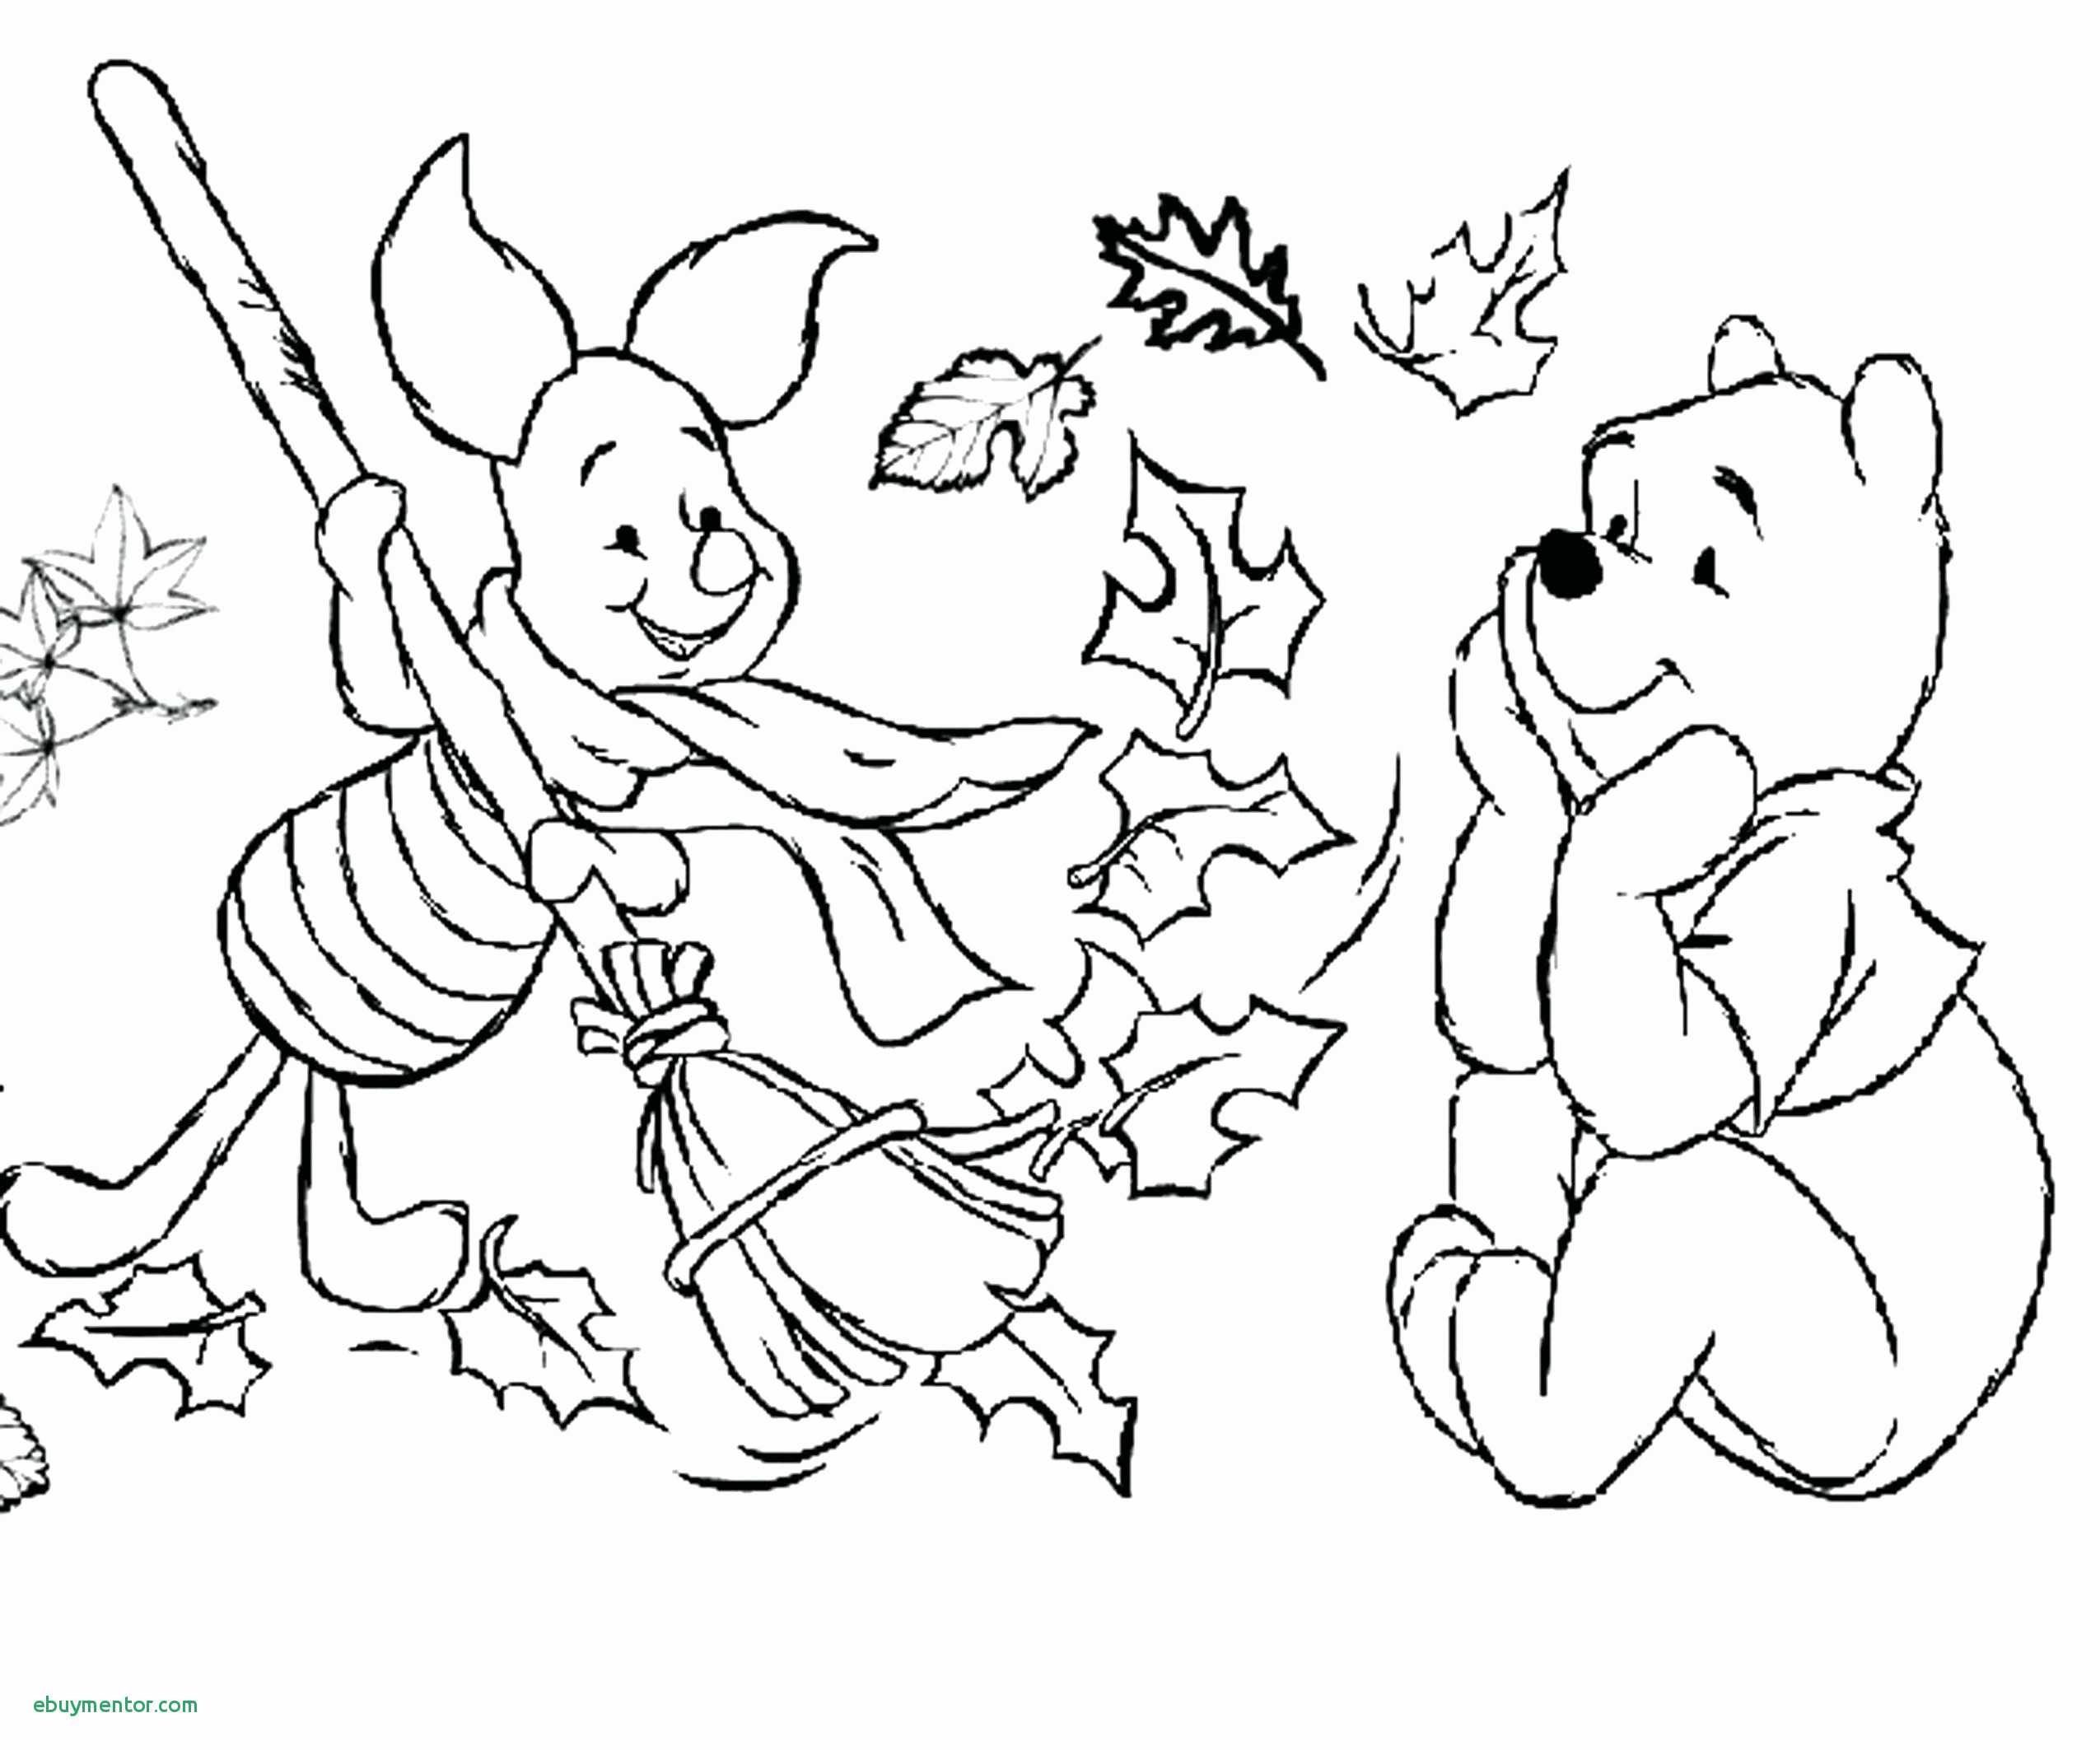 printable anime coloring pages Download-Www Printable Coloring Pages 5-i